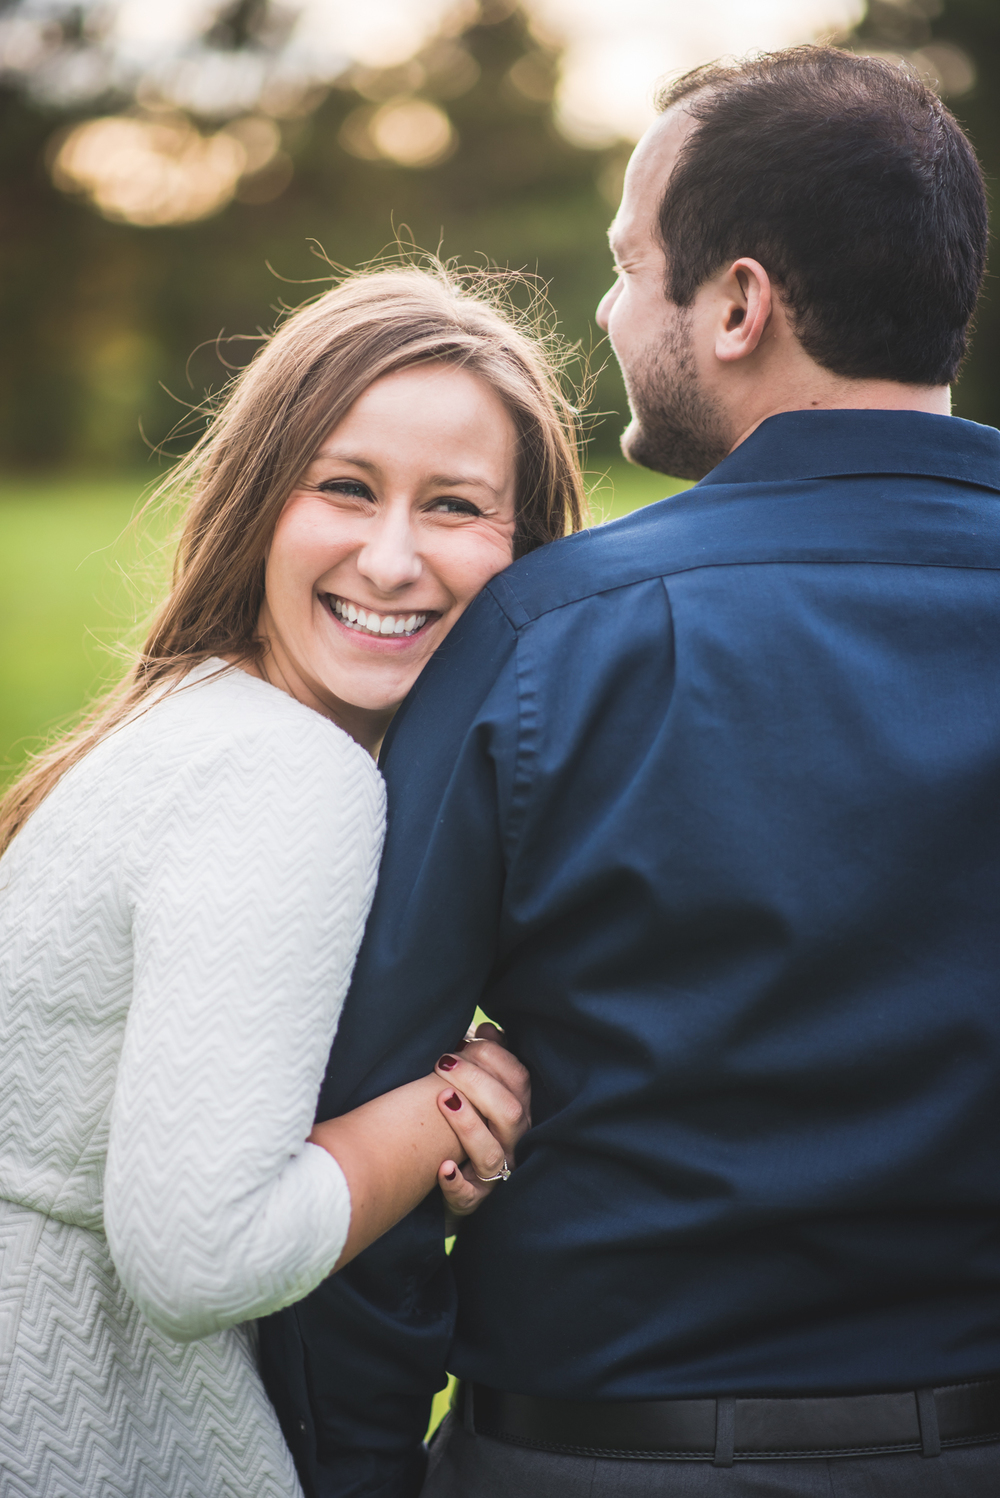 Silver springs park engagement session | Ali + Chris